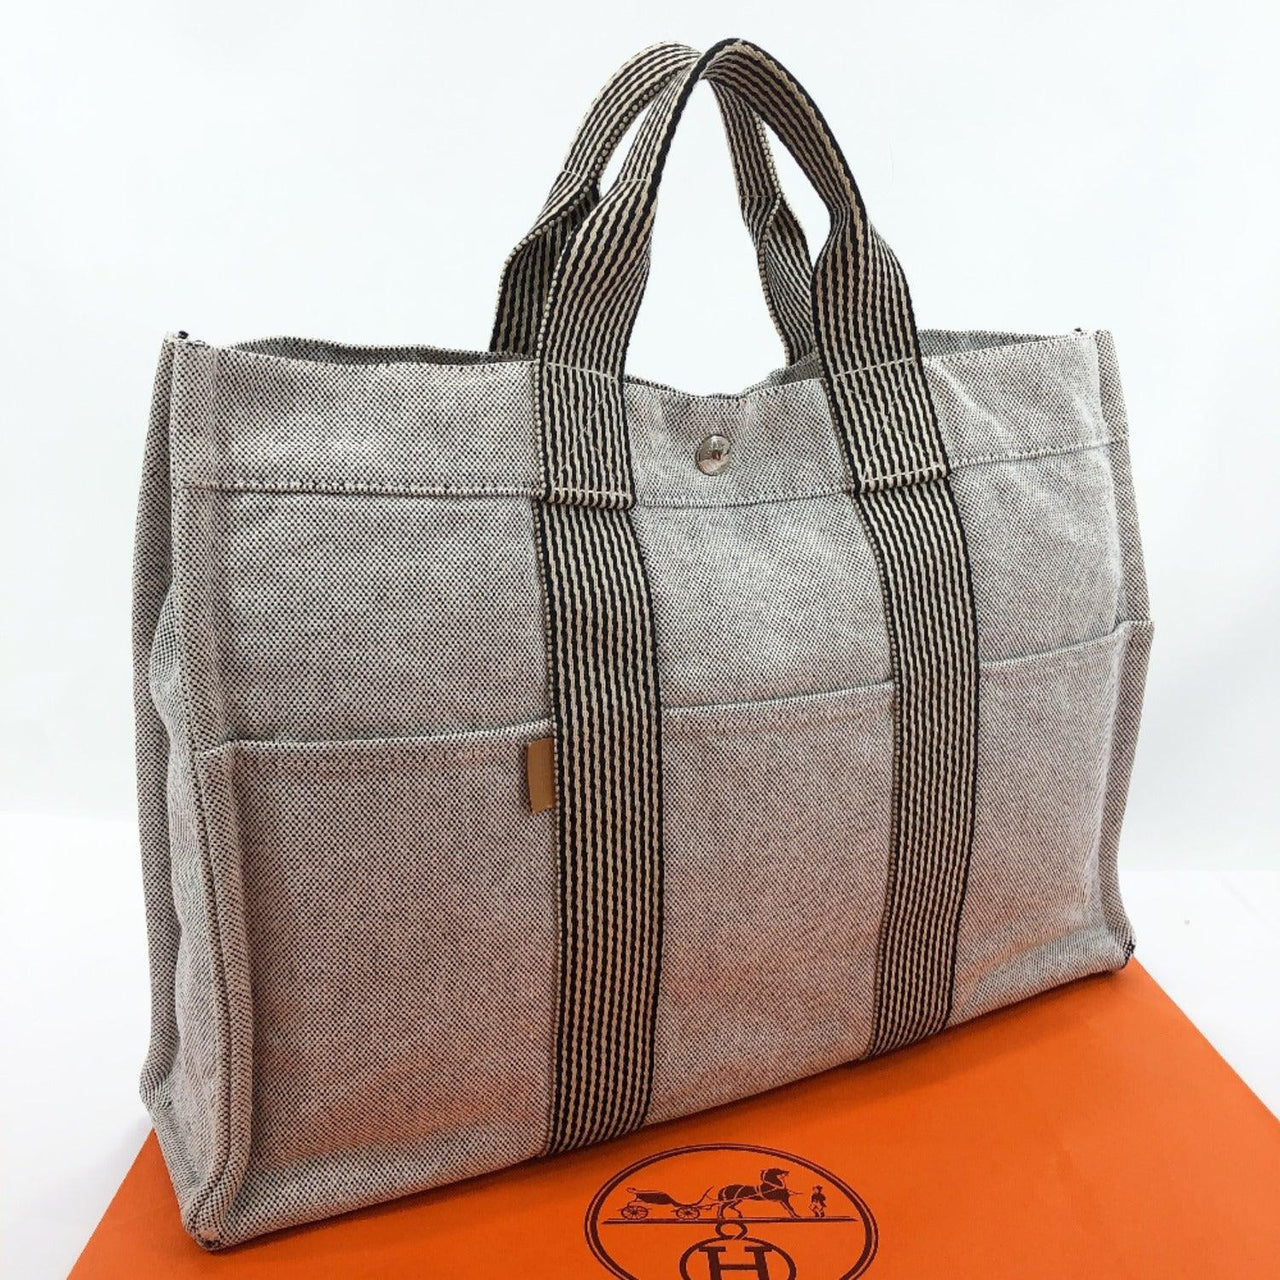 HERMES Tote Bag fool toeMM Tower ash gray unisex Used